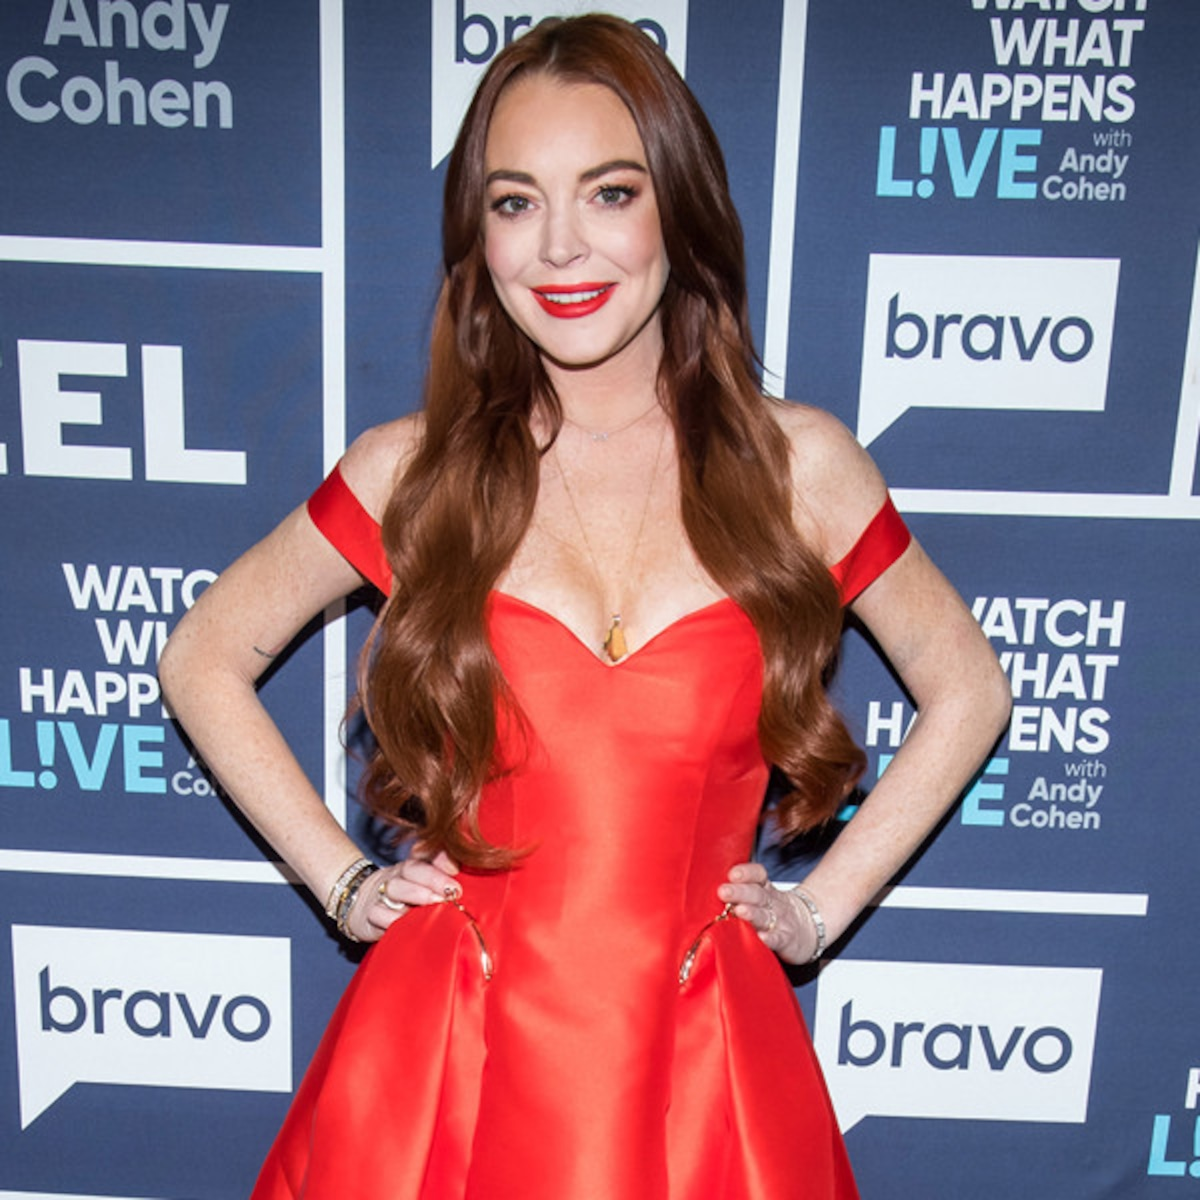 Lindsay Lohan Interracial Porn Captions - Remembering Lindsay Lohan's Infamous Sex List, 5 Years Later ...